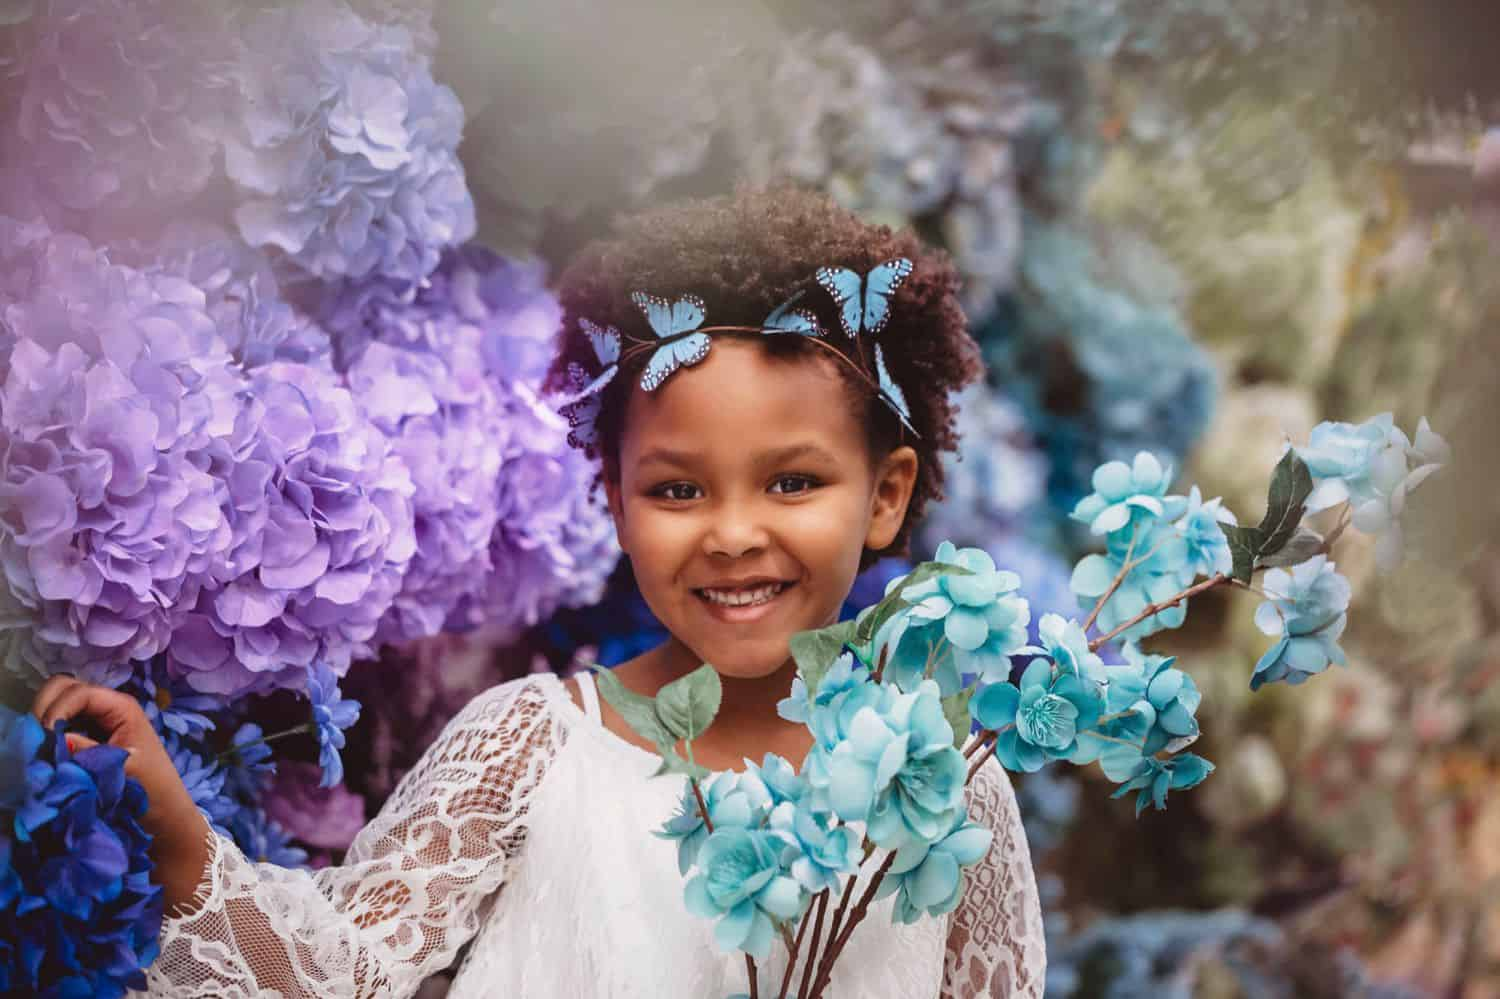 Portrait photography of little girl among silk flowers in a Michael's Craft Store for a photo project.